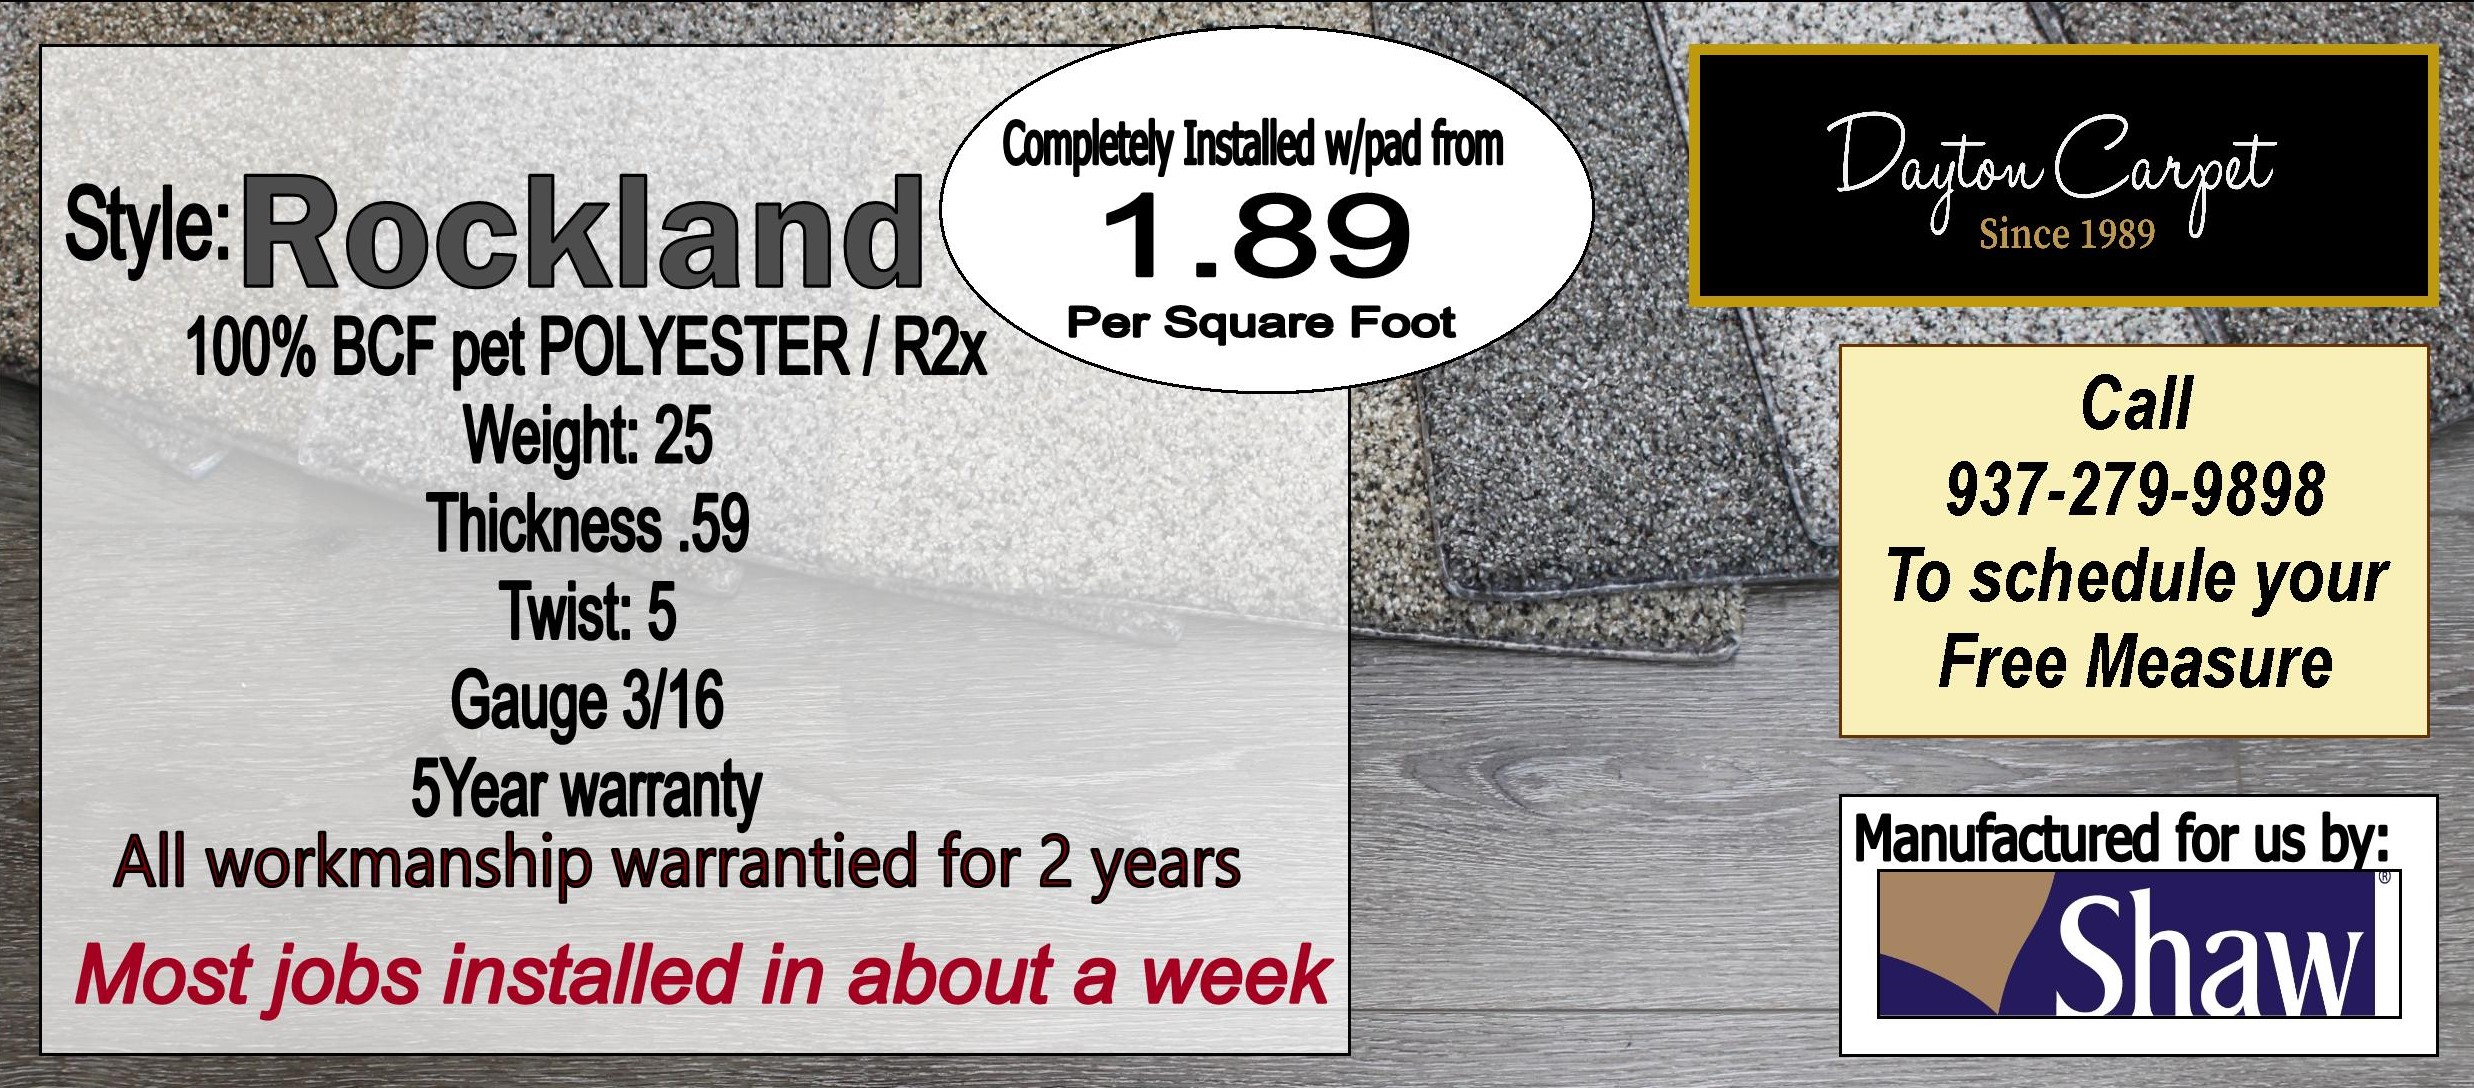 Rockland Dayton Carpet Liquidators Inc